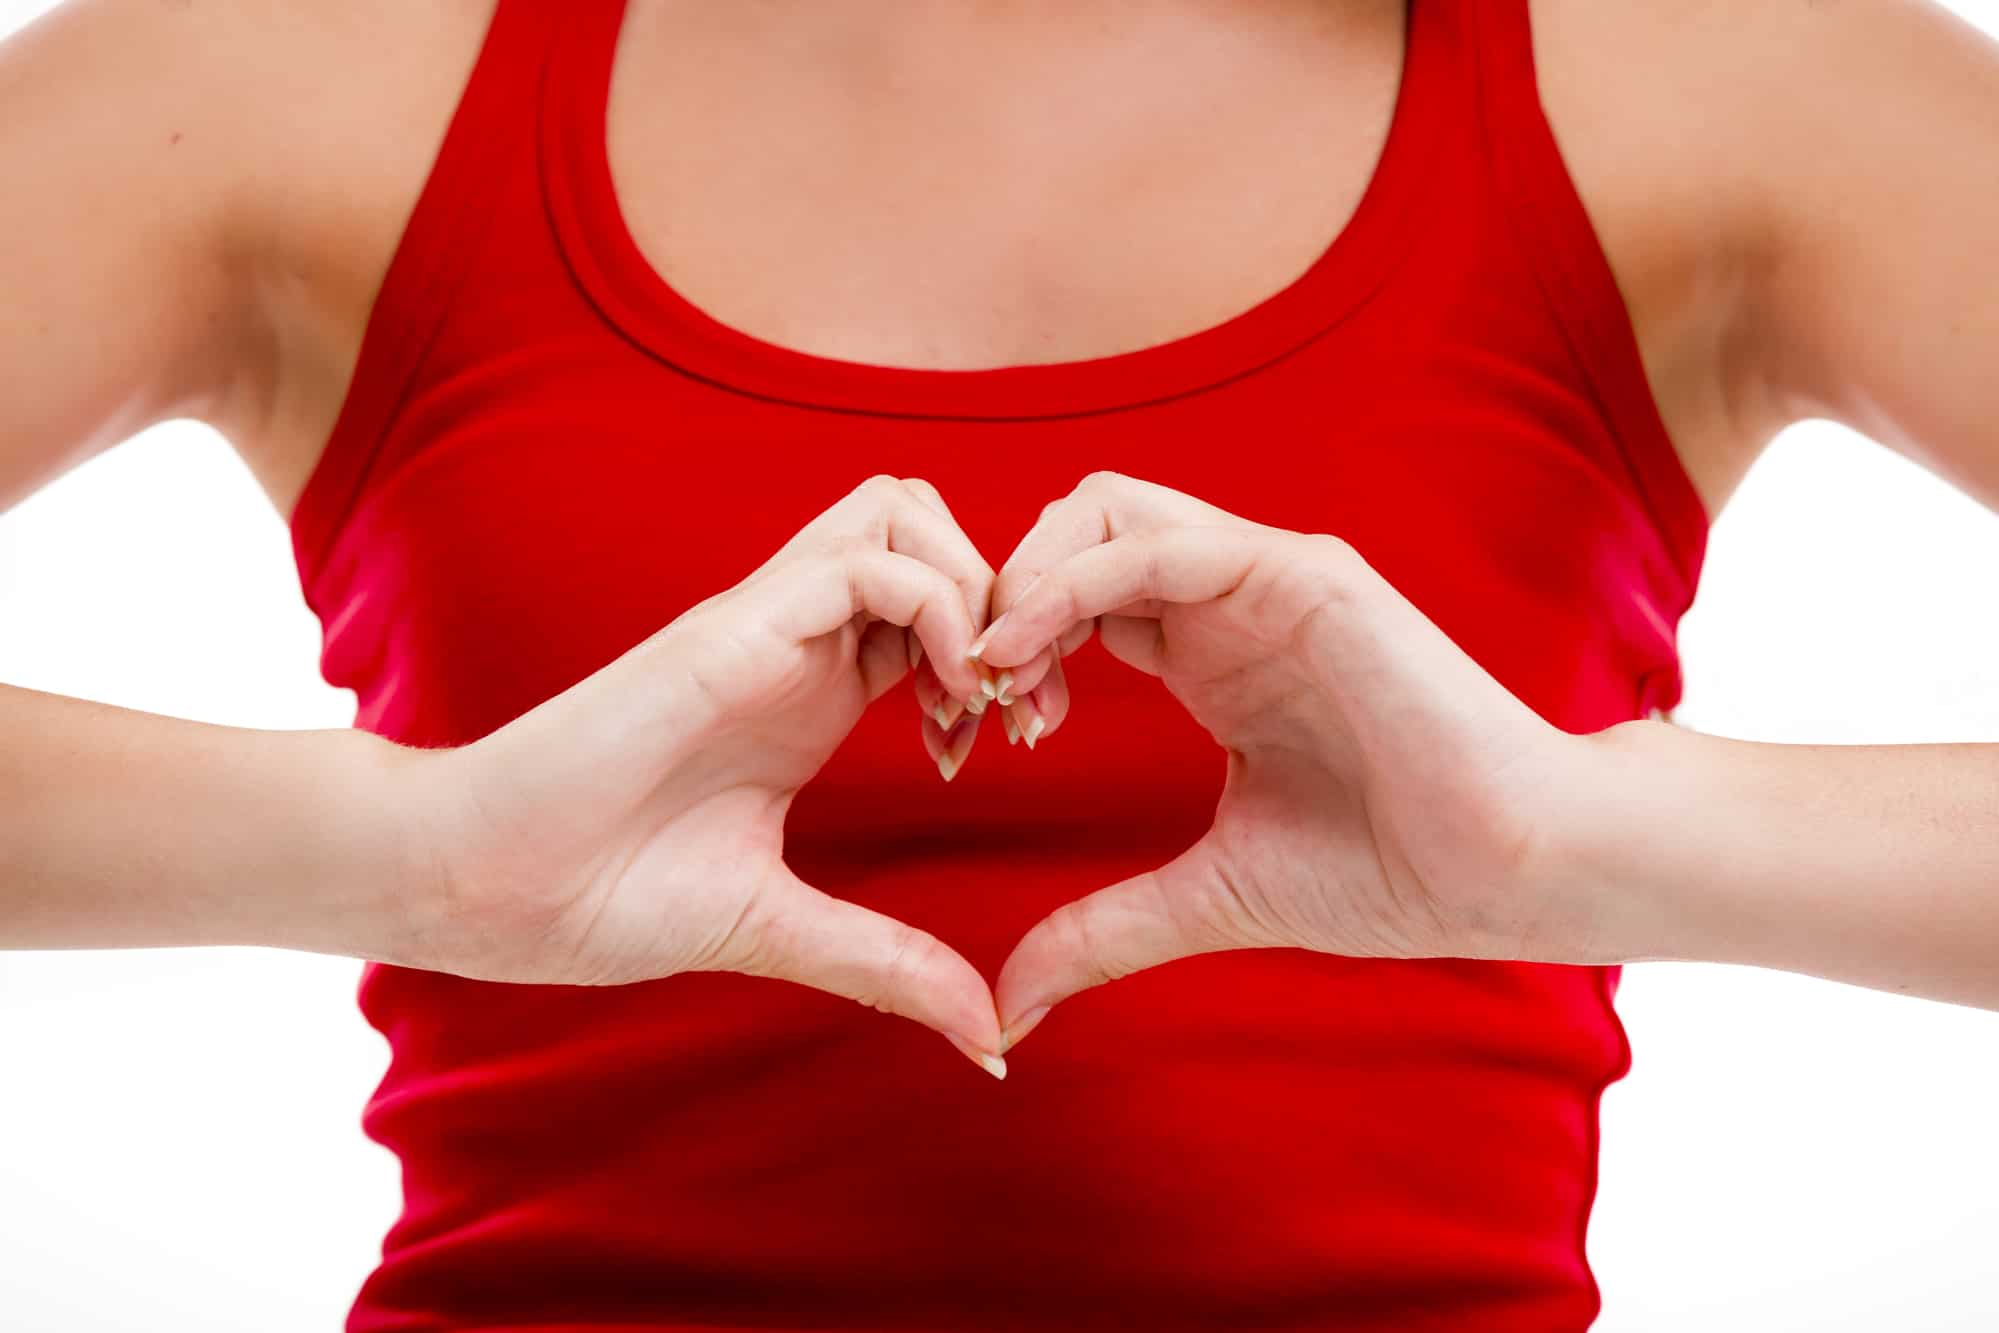 Beautiful young woman over a white background doing a heart shape with her hands